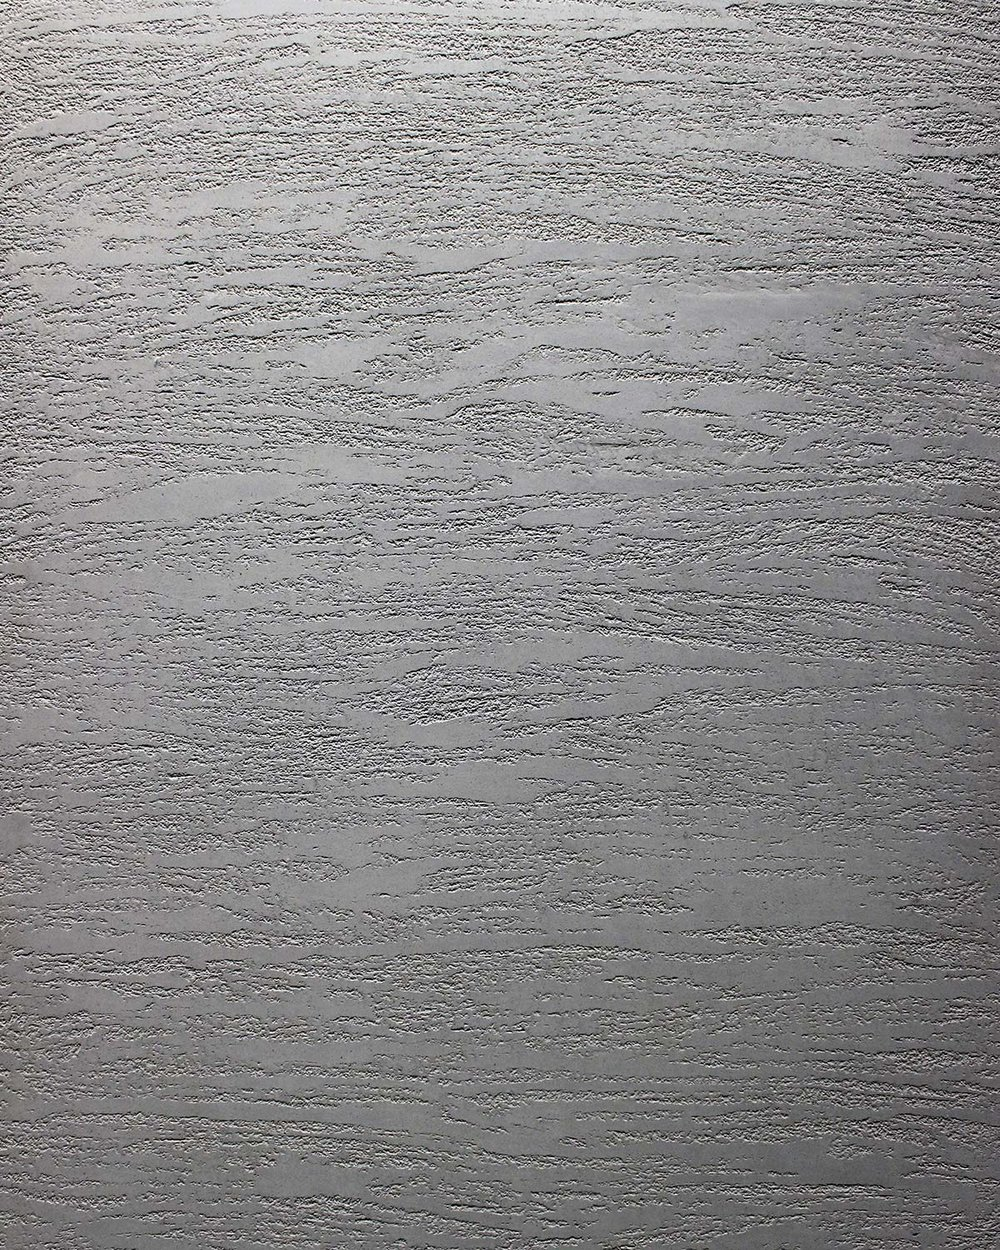 armourcoat-1955.5-en-products-polished-plaster-dragged-images-dragged_03_full.jpg